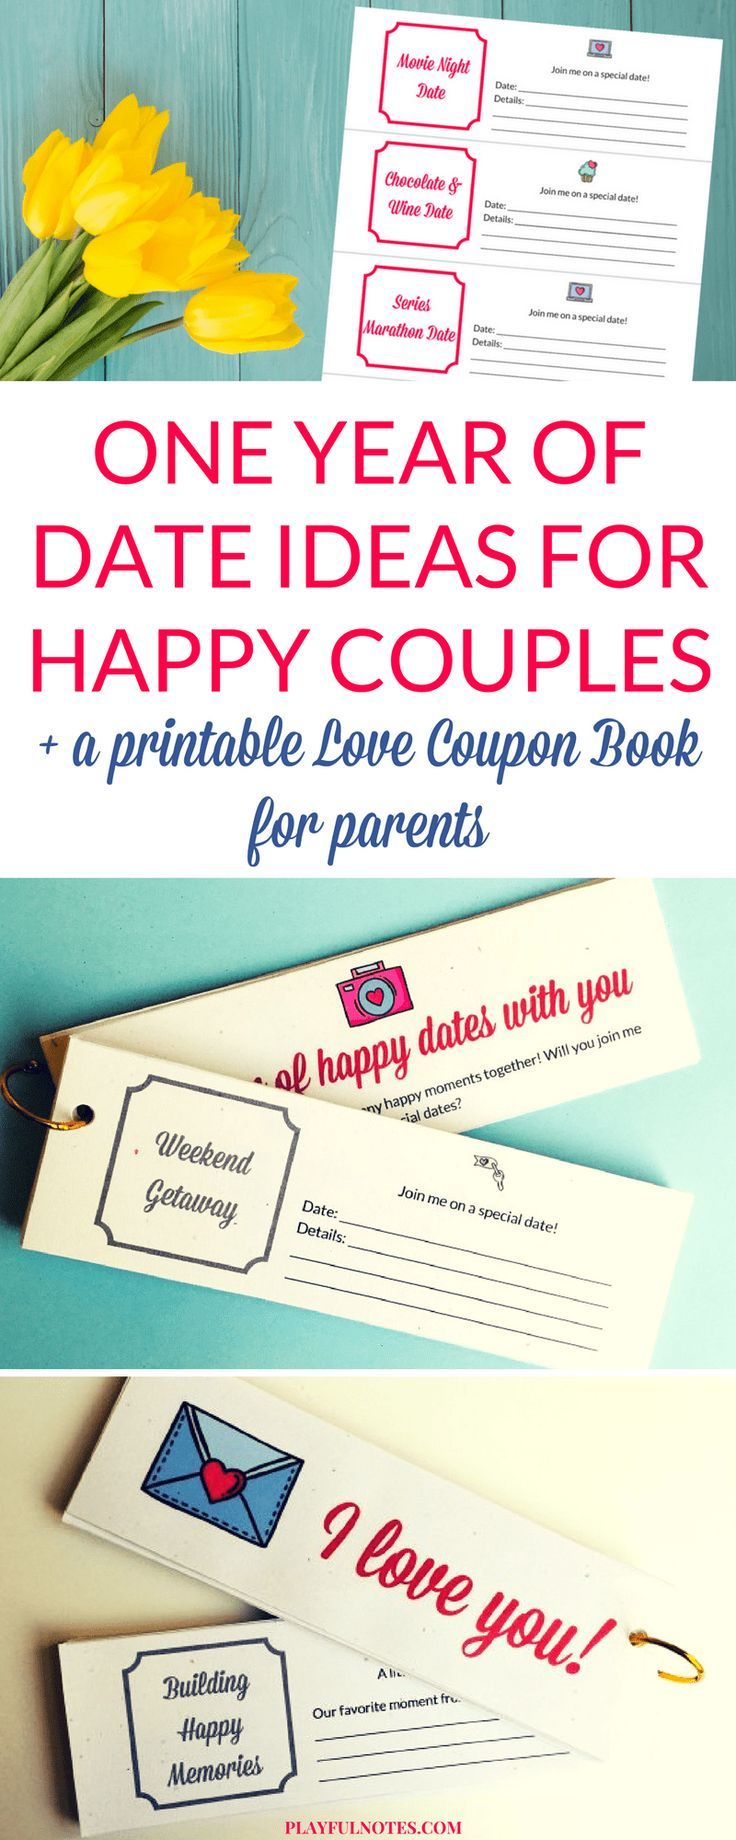 A love coupon book for parents is a wonderful way to plan quality couple time and make a commitment to focus on the relationship even in the busiest times. You can download here the date cards and create your own love coupon book! | Printable DIY love coupon book | Love coupon book for dads | Date ideas for parents